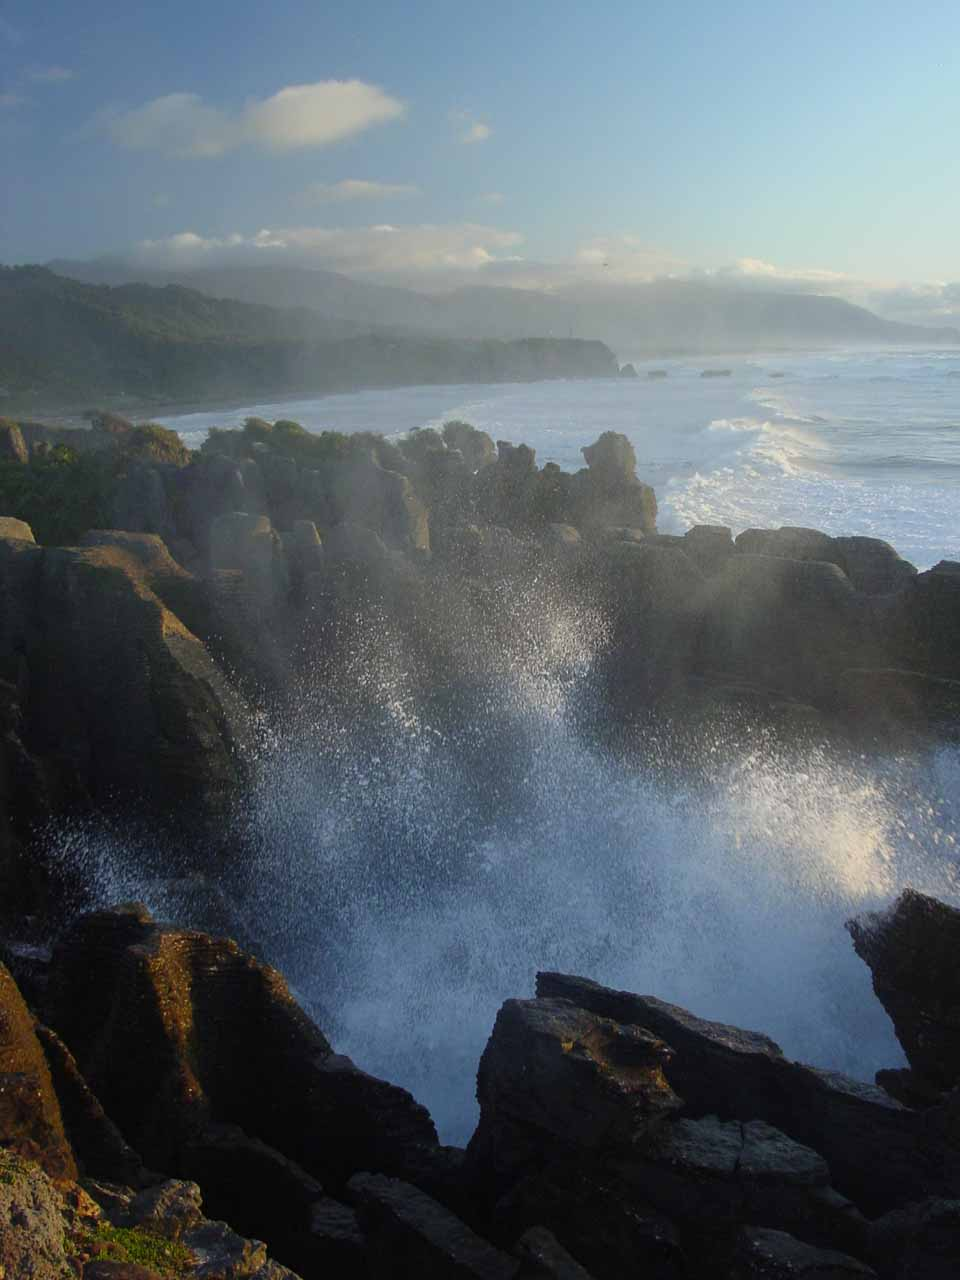 The Pancake Rocks and Putai Blowhole at Punakaiki was where we managed to catch a surreal (and bitterly cold) sunset on the day we visited Five Mile Creek Falls back in 2004